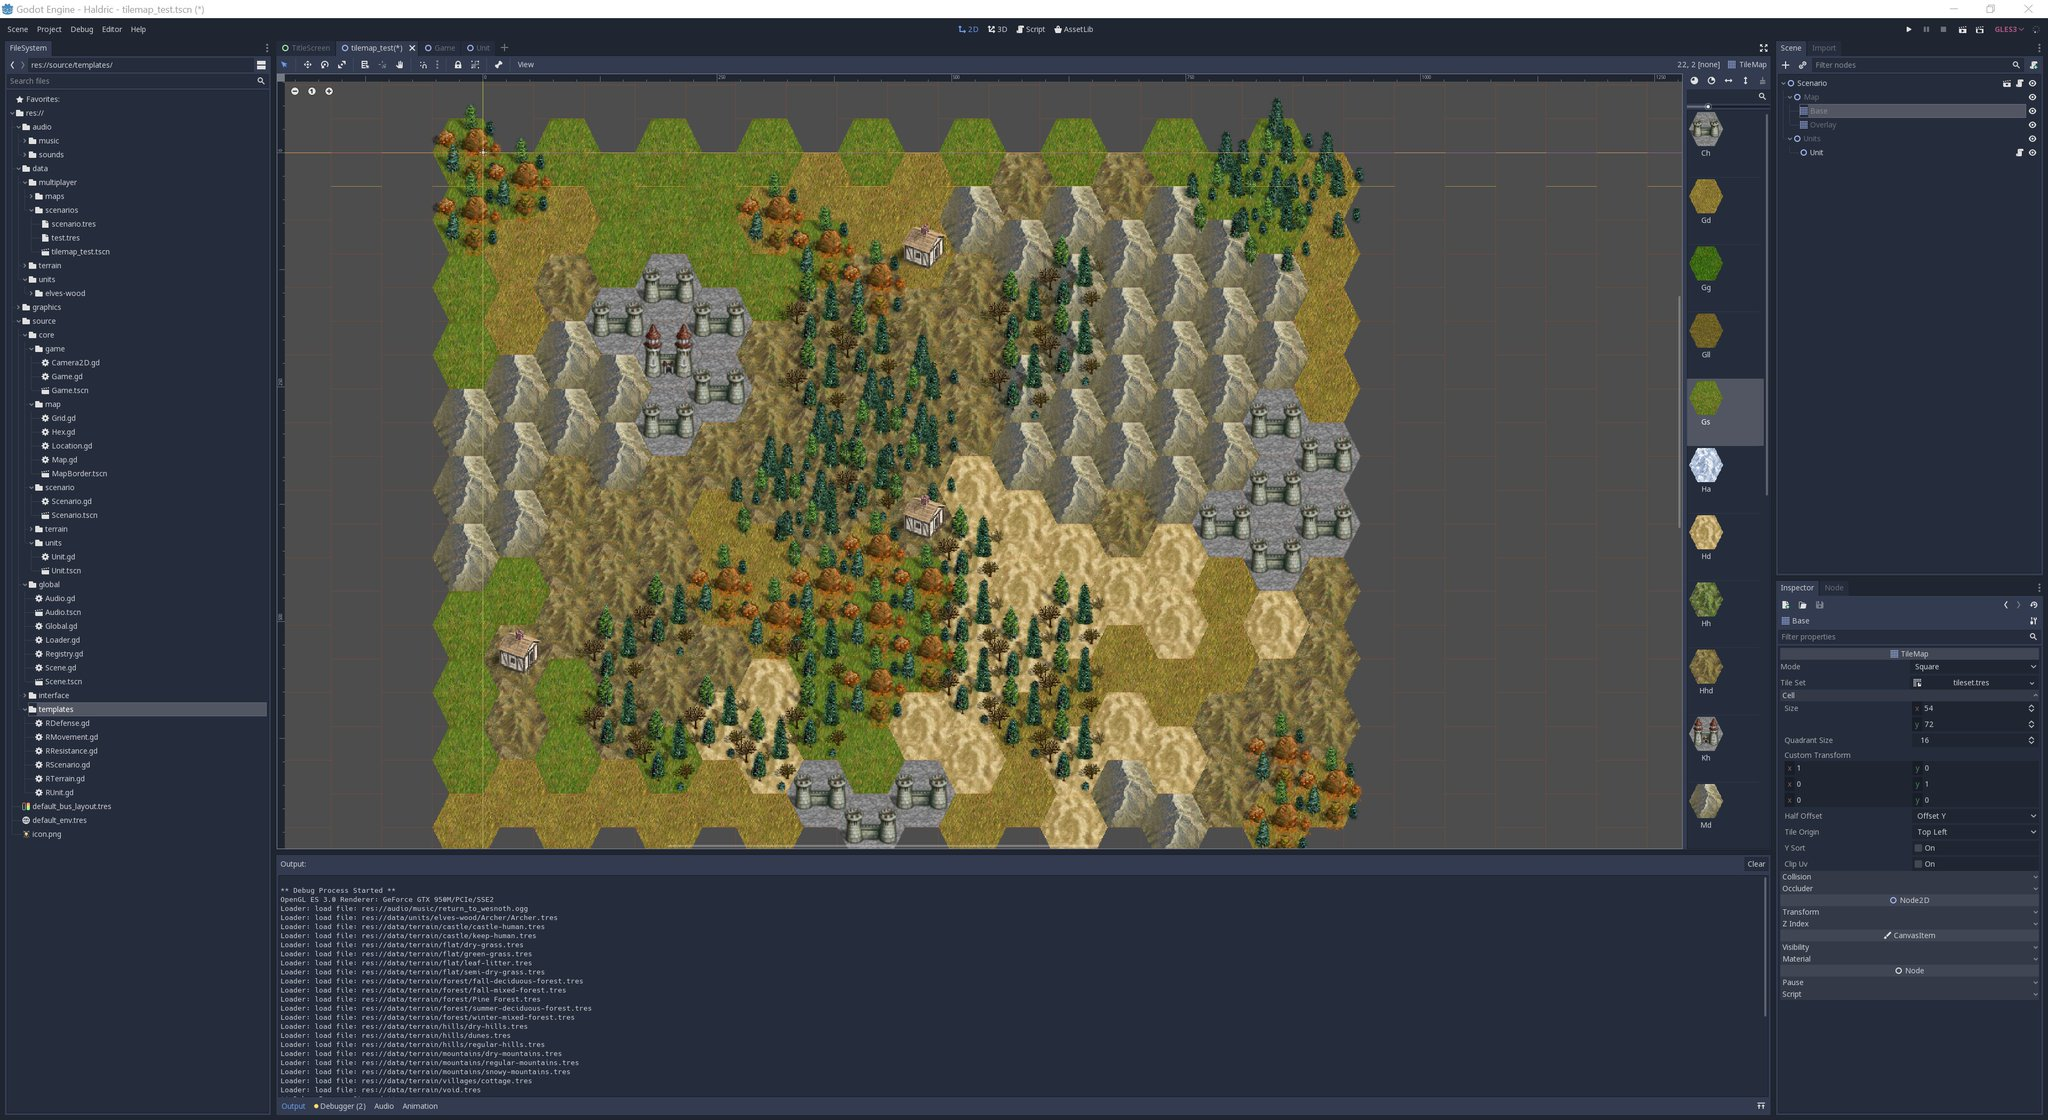 Looks like Battle for Wesnoth is being ported to Godot Engine